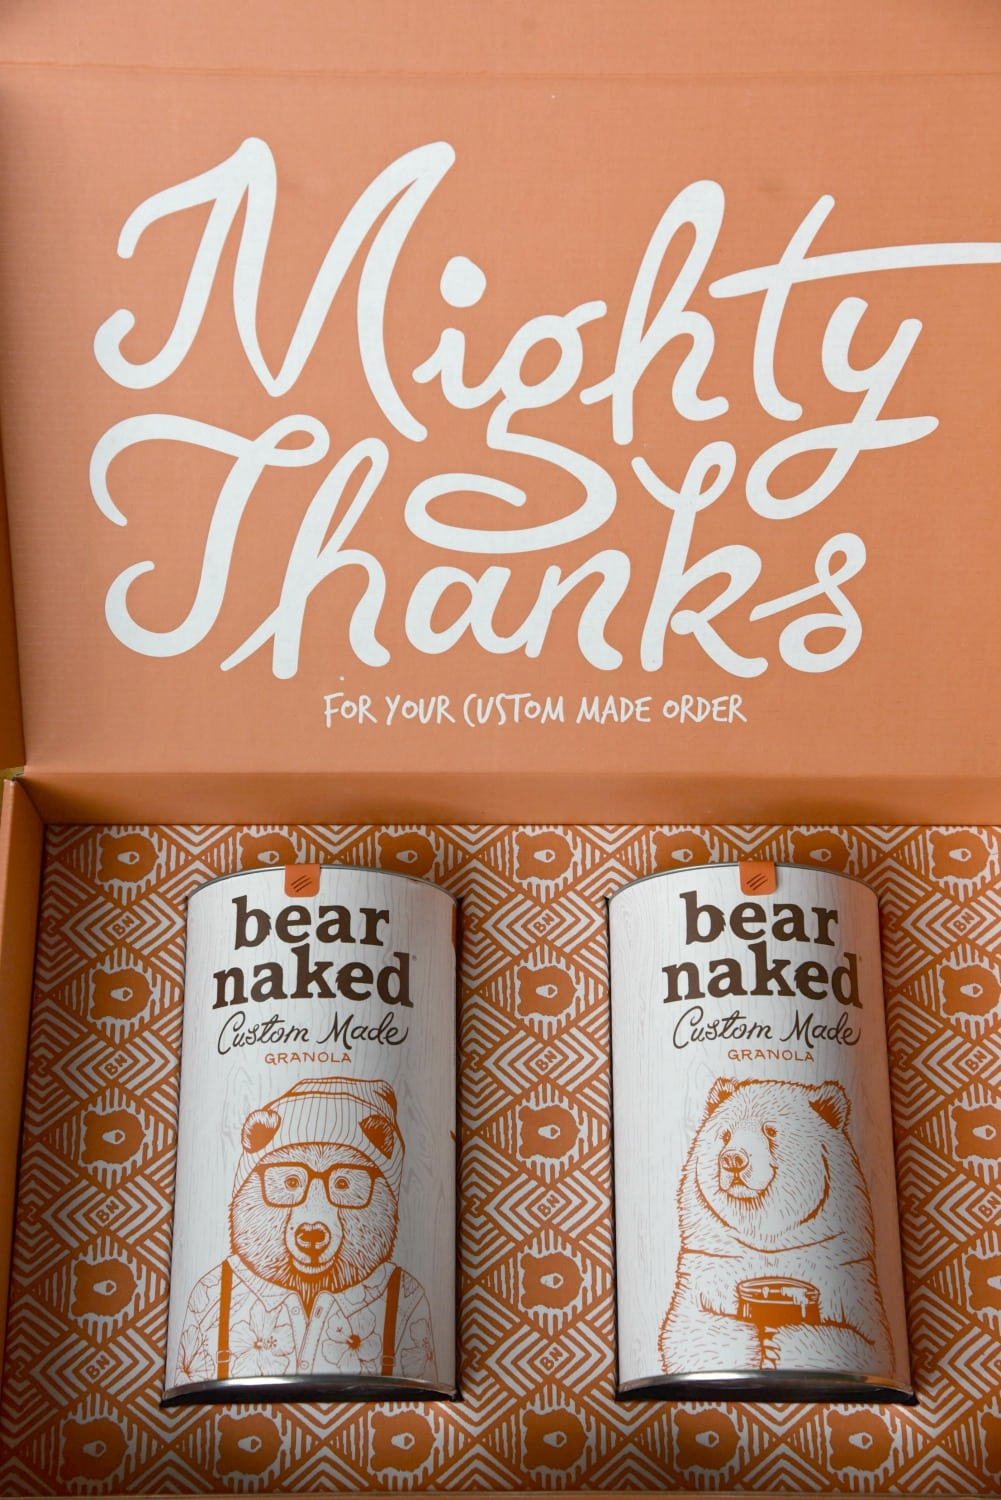 bear naked shipped